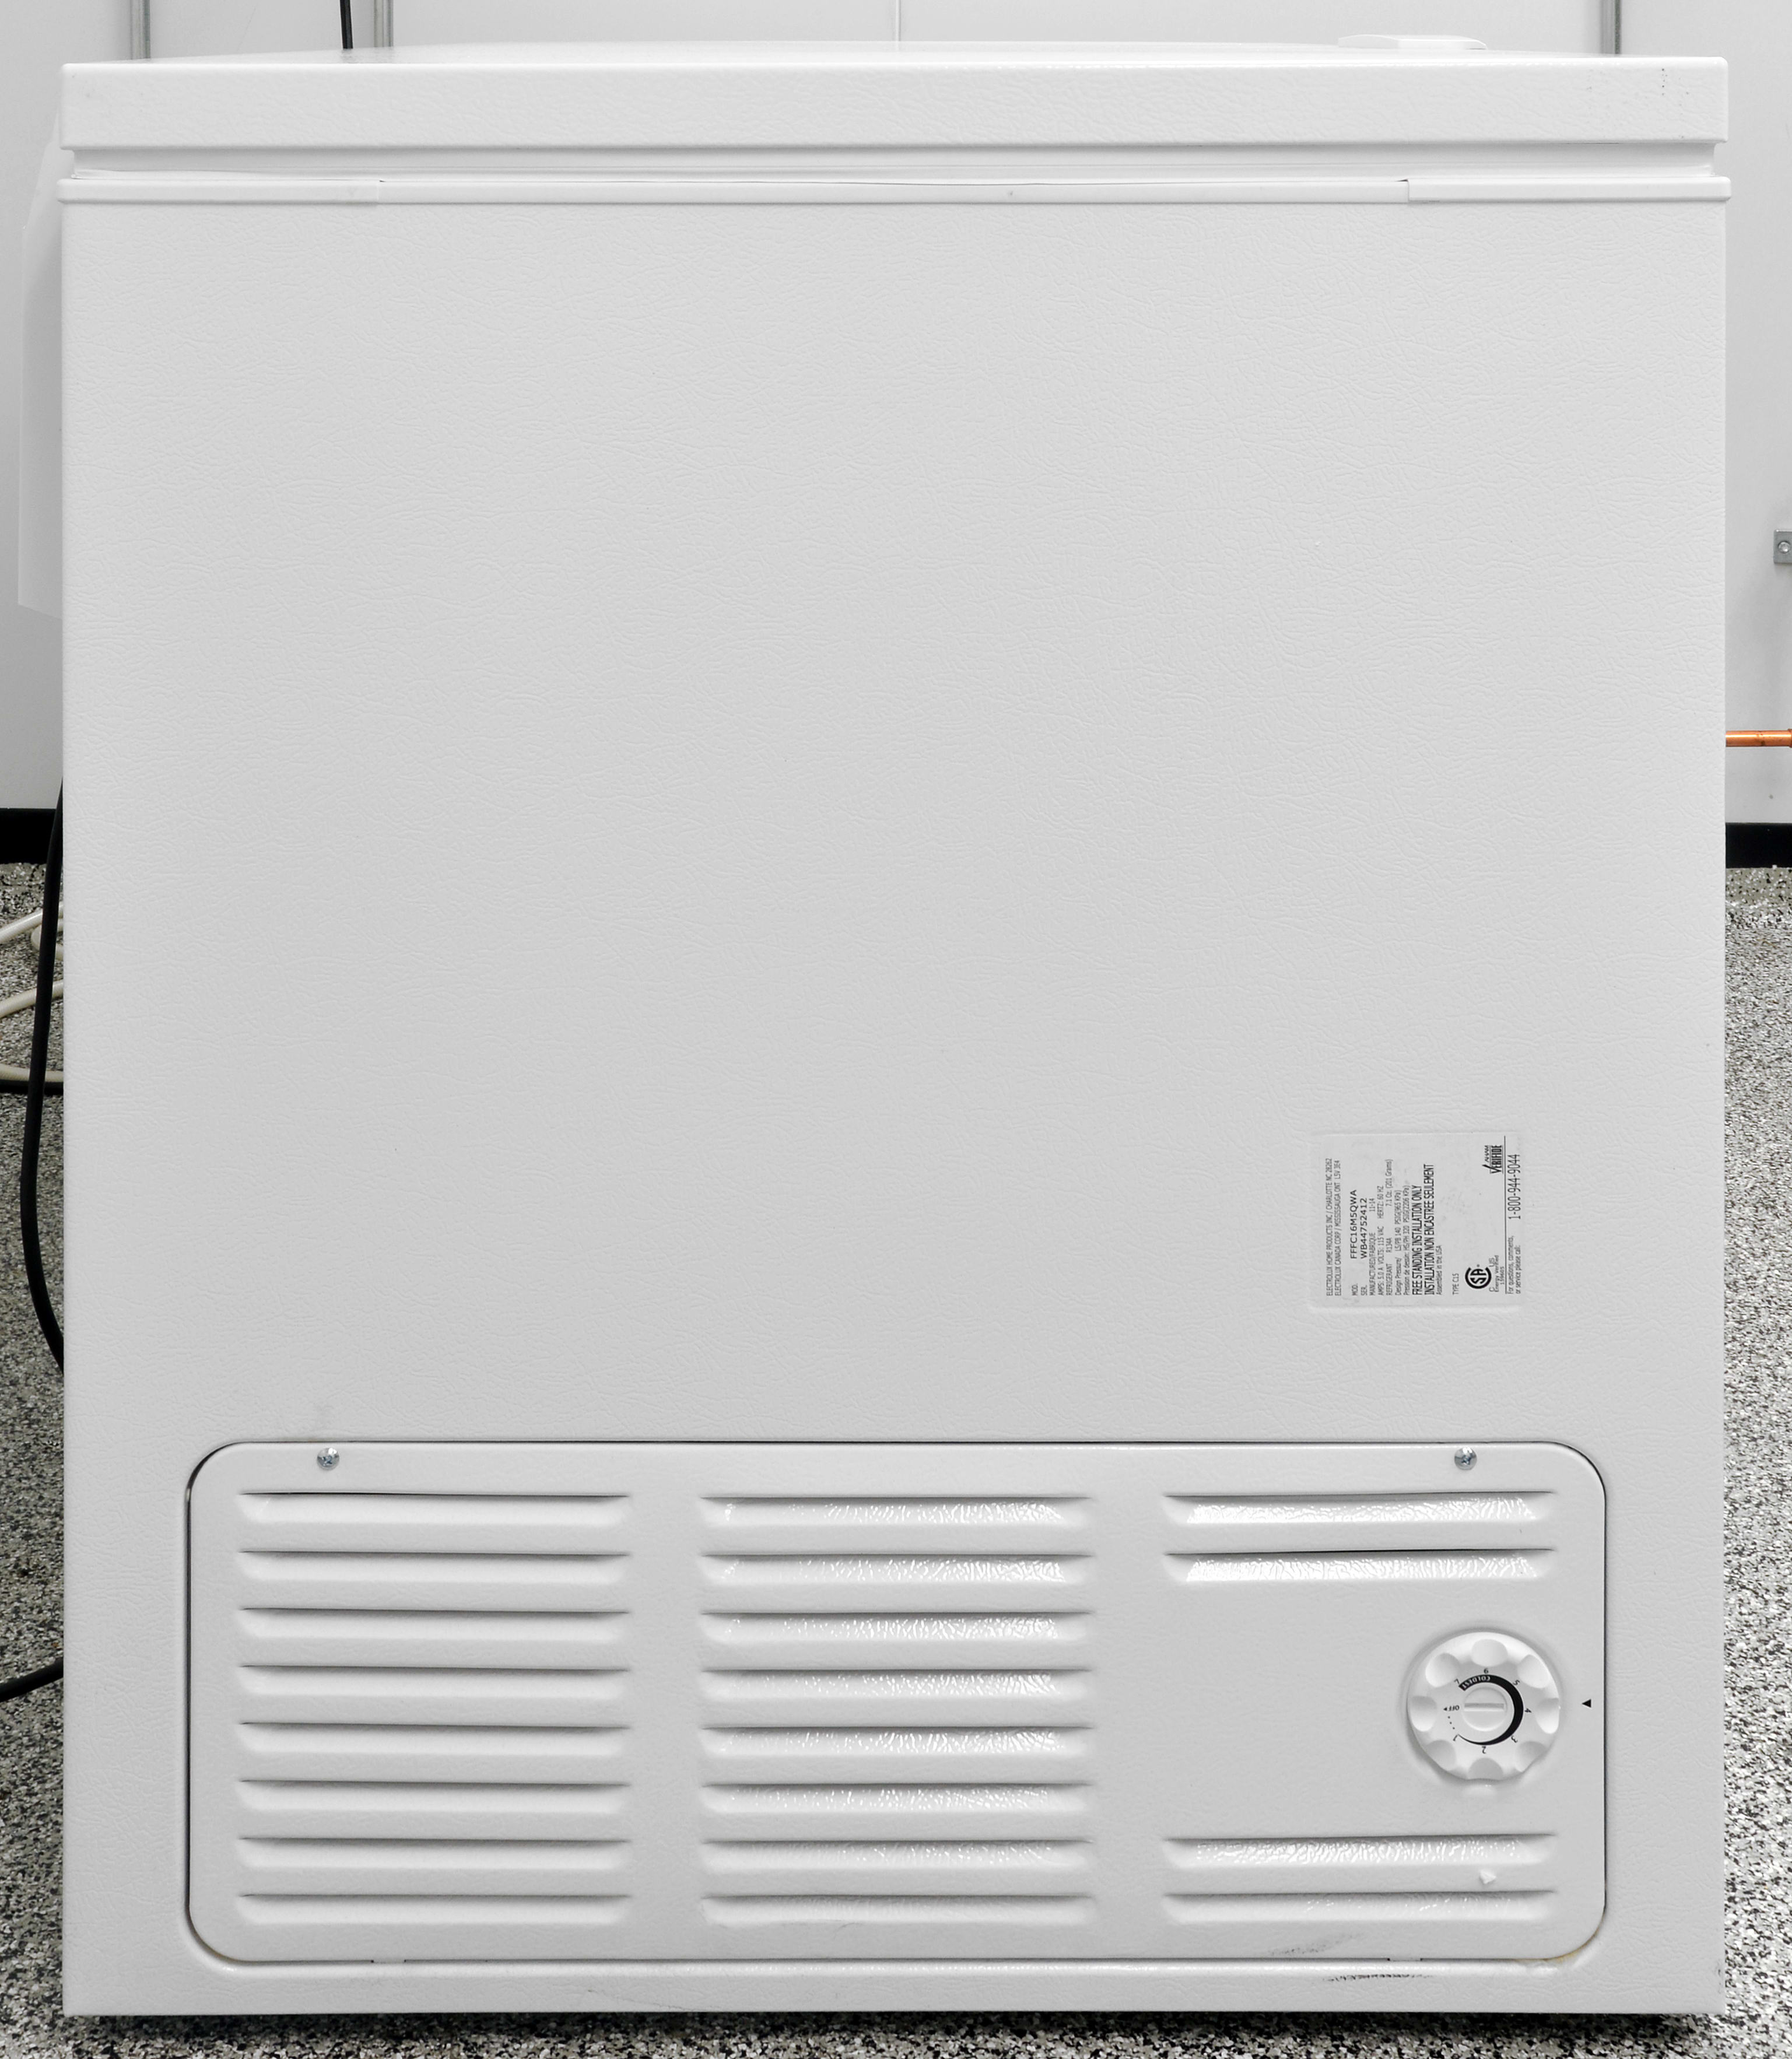 The control dial and air vent are located on the same side of the Frigidaire FFFC16M5QW.